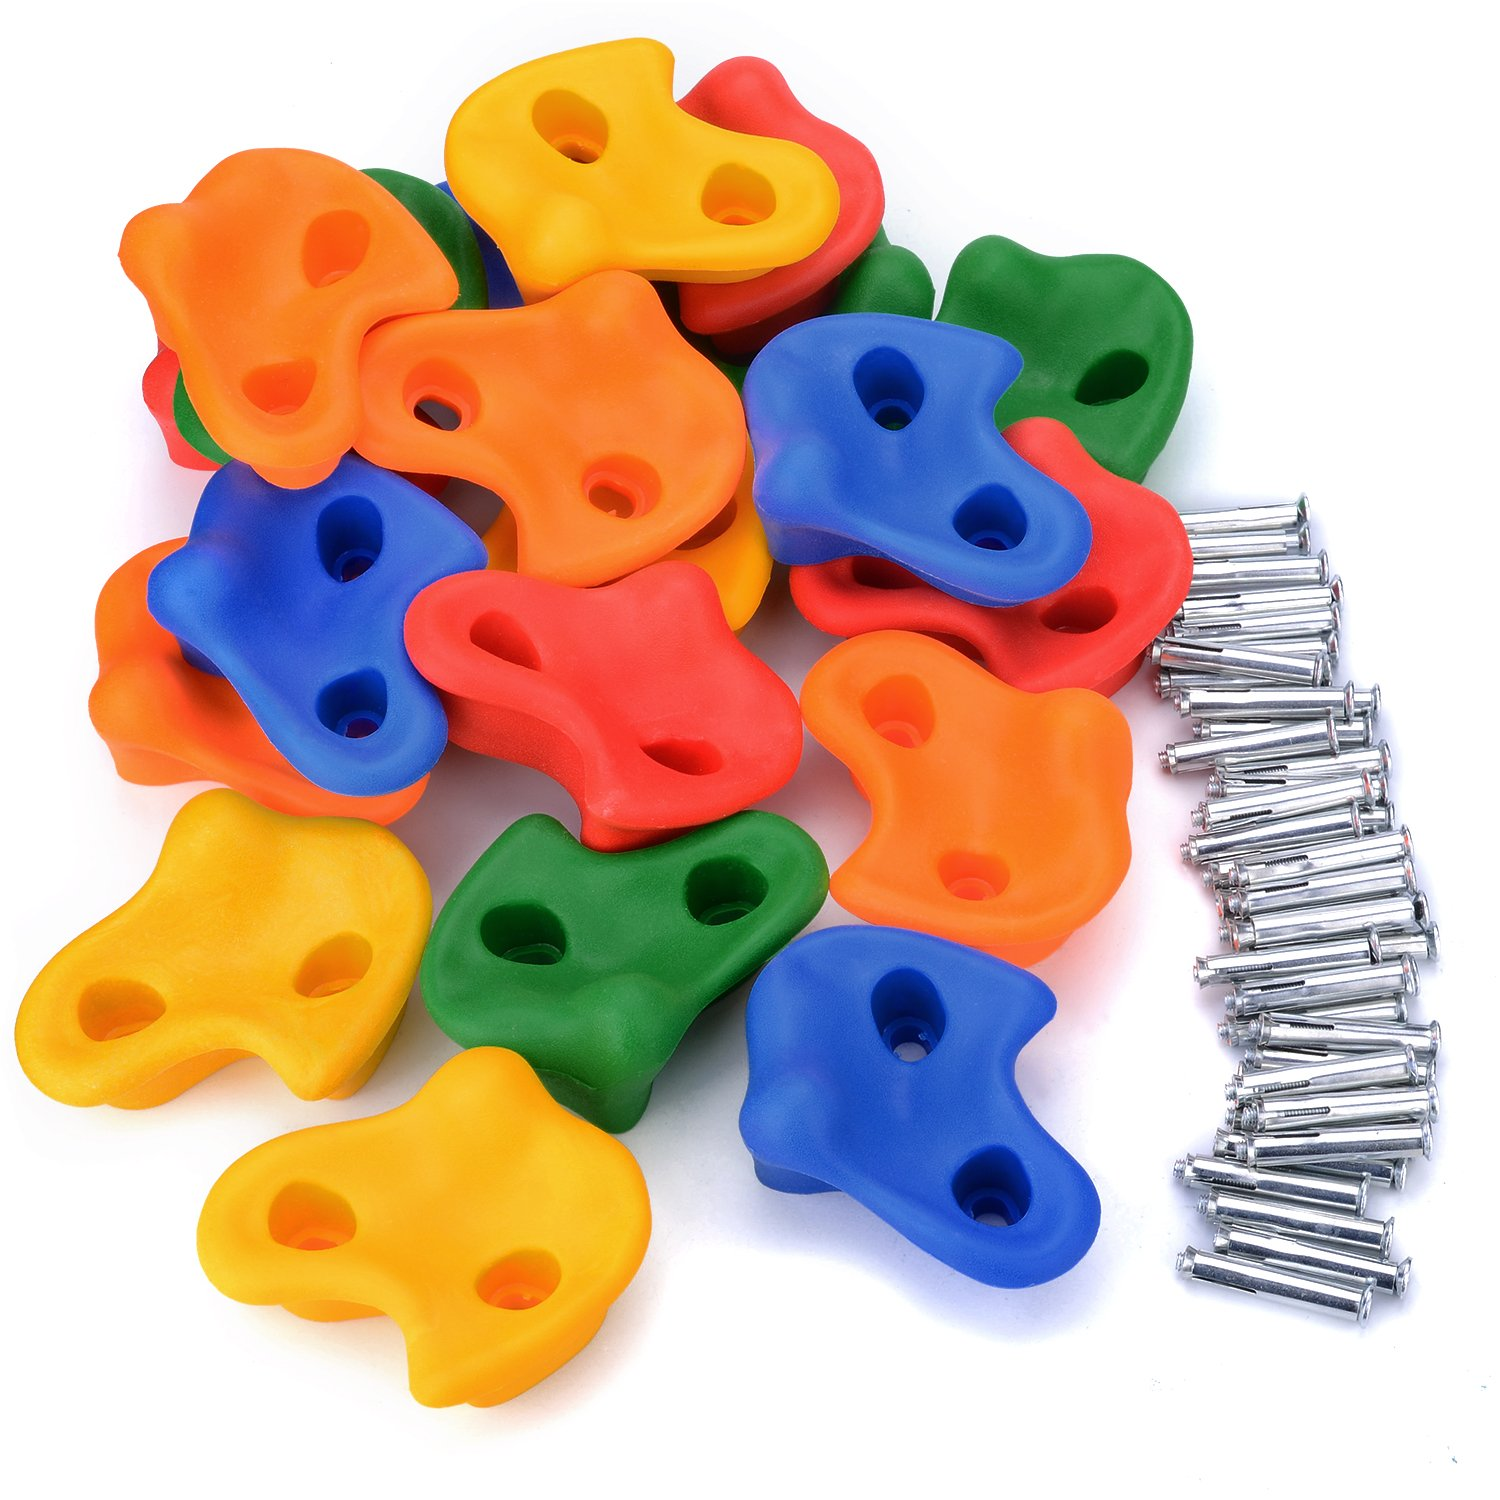 AGPTEK 20 Textured Climbing Holds for Kids Grips,Rock Wall Indoor/Outdoor Playground Set, Multi Color Assorted with Hardware Accessories (20x Climbing Holds &40x T-Nuts)